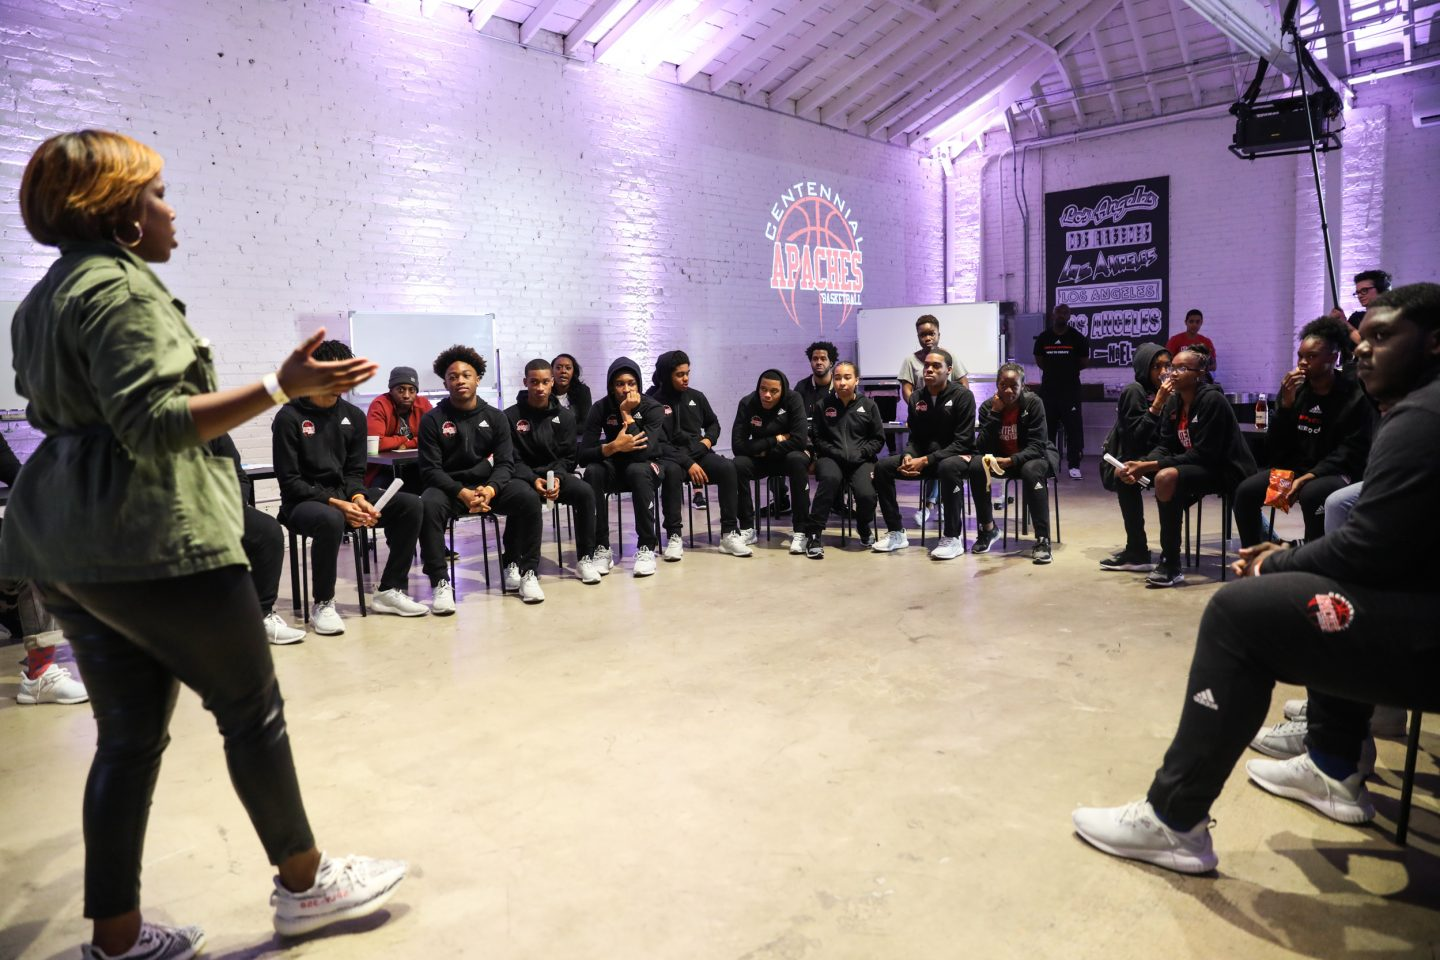 A woman talking in front of high school pupils. adidas, GamePlan A, communities, support, athletes, corporate social responsibility